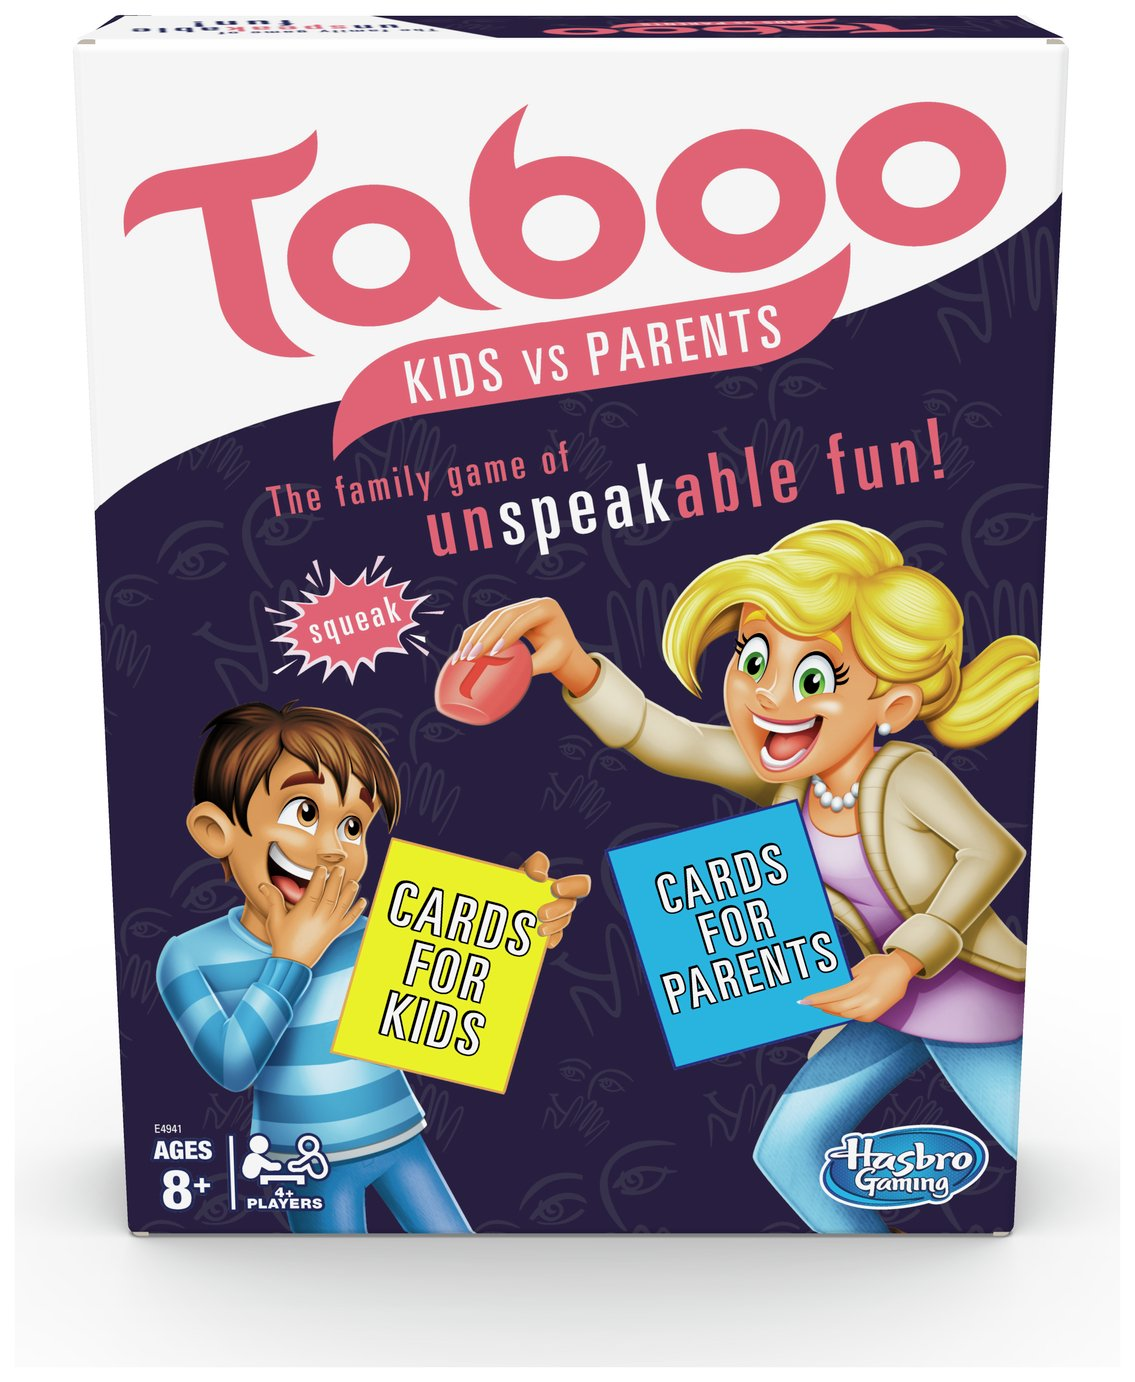 Taboo Kids vs. Parents Family Board Game from Hasbro Gaming